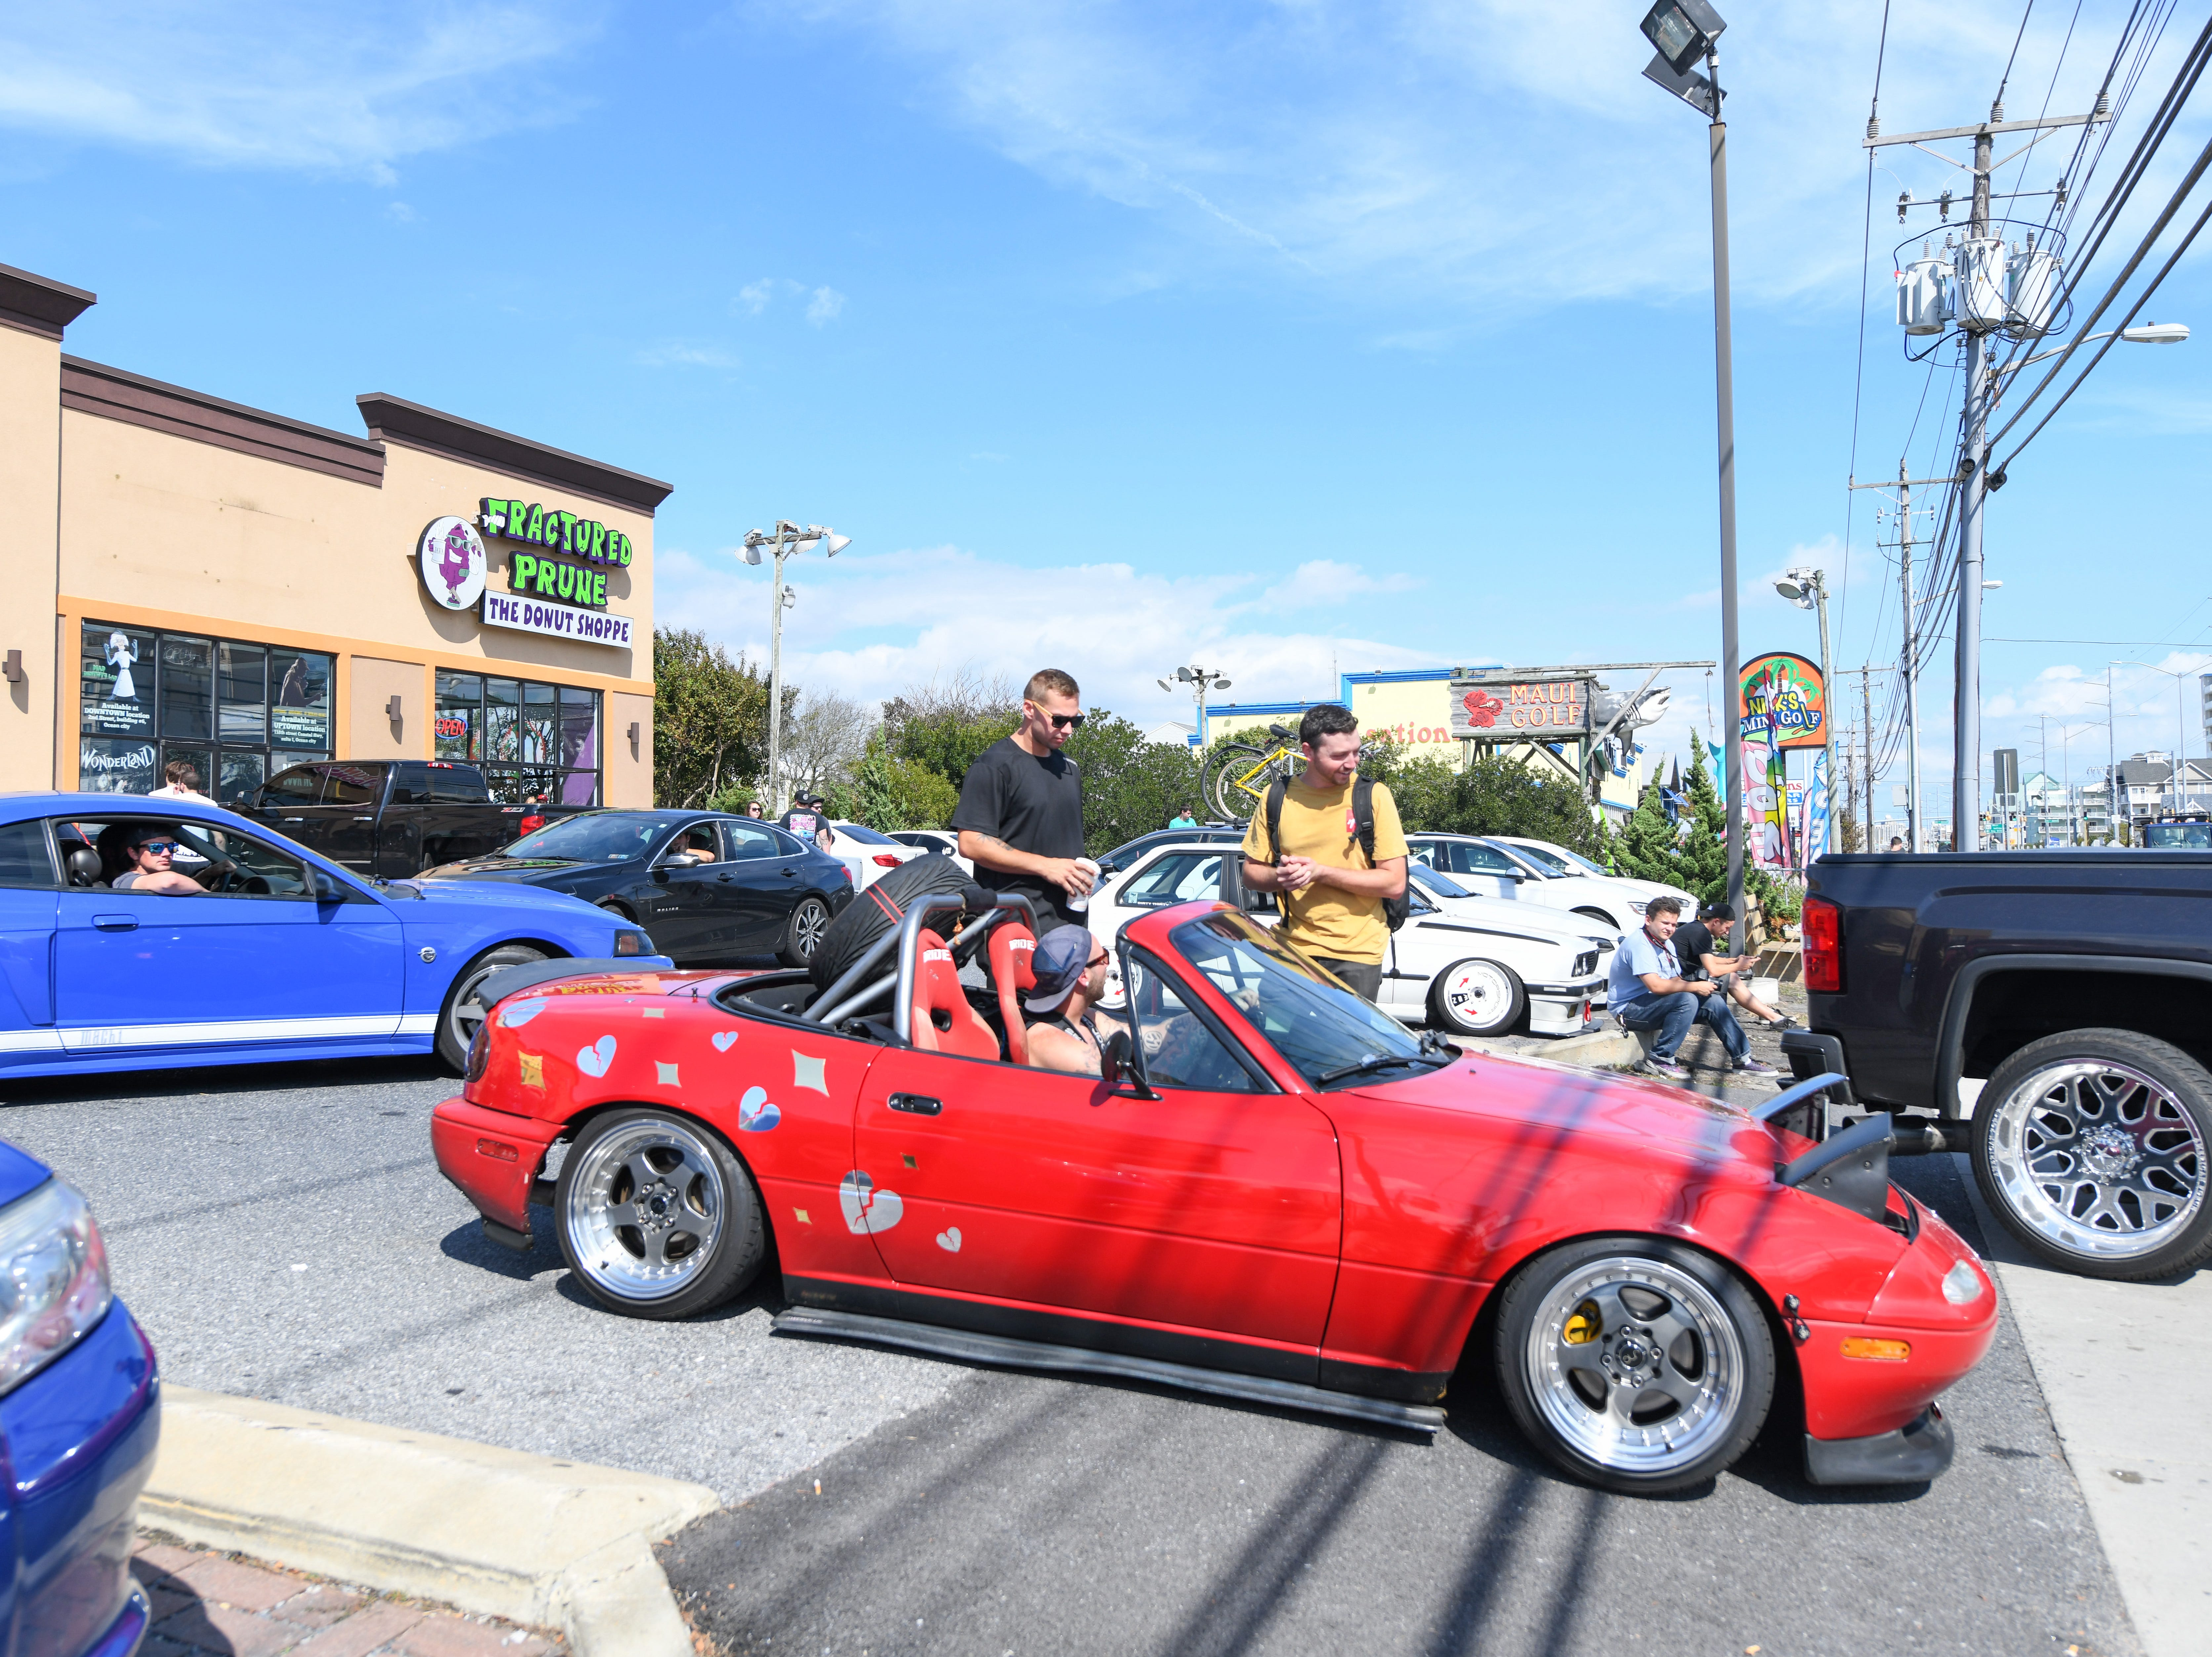 A crowd gathers starts to gather at an Ocean City parking lot on Saturday, Sept 29, 2018. Streets in the area were full of crowds and cars for the unofficial H2Oi weekend, despite the fact that the car show has moved to Atlantic City.